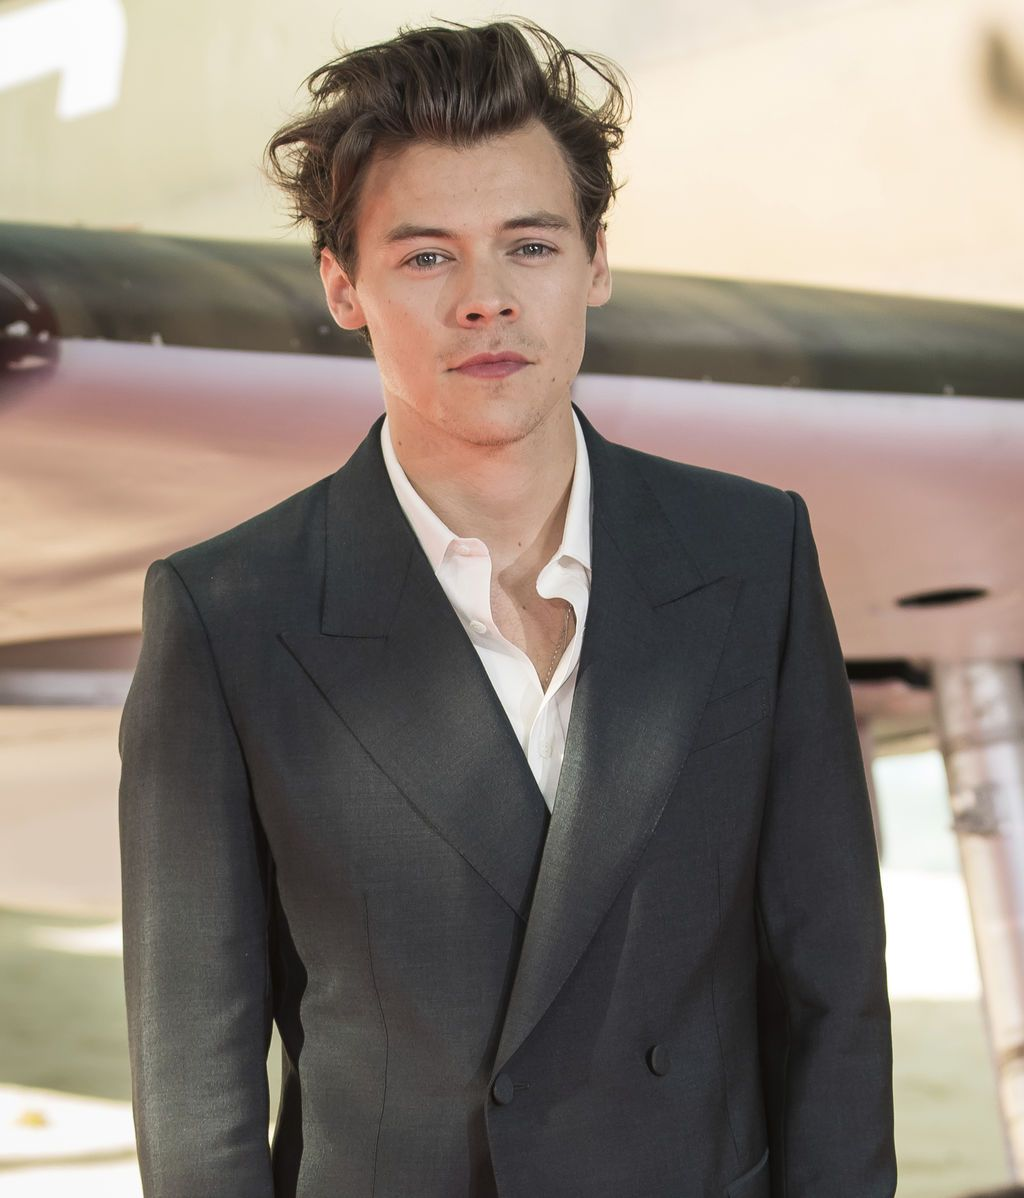 4. Harry Styles